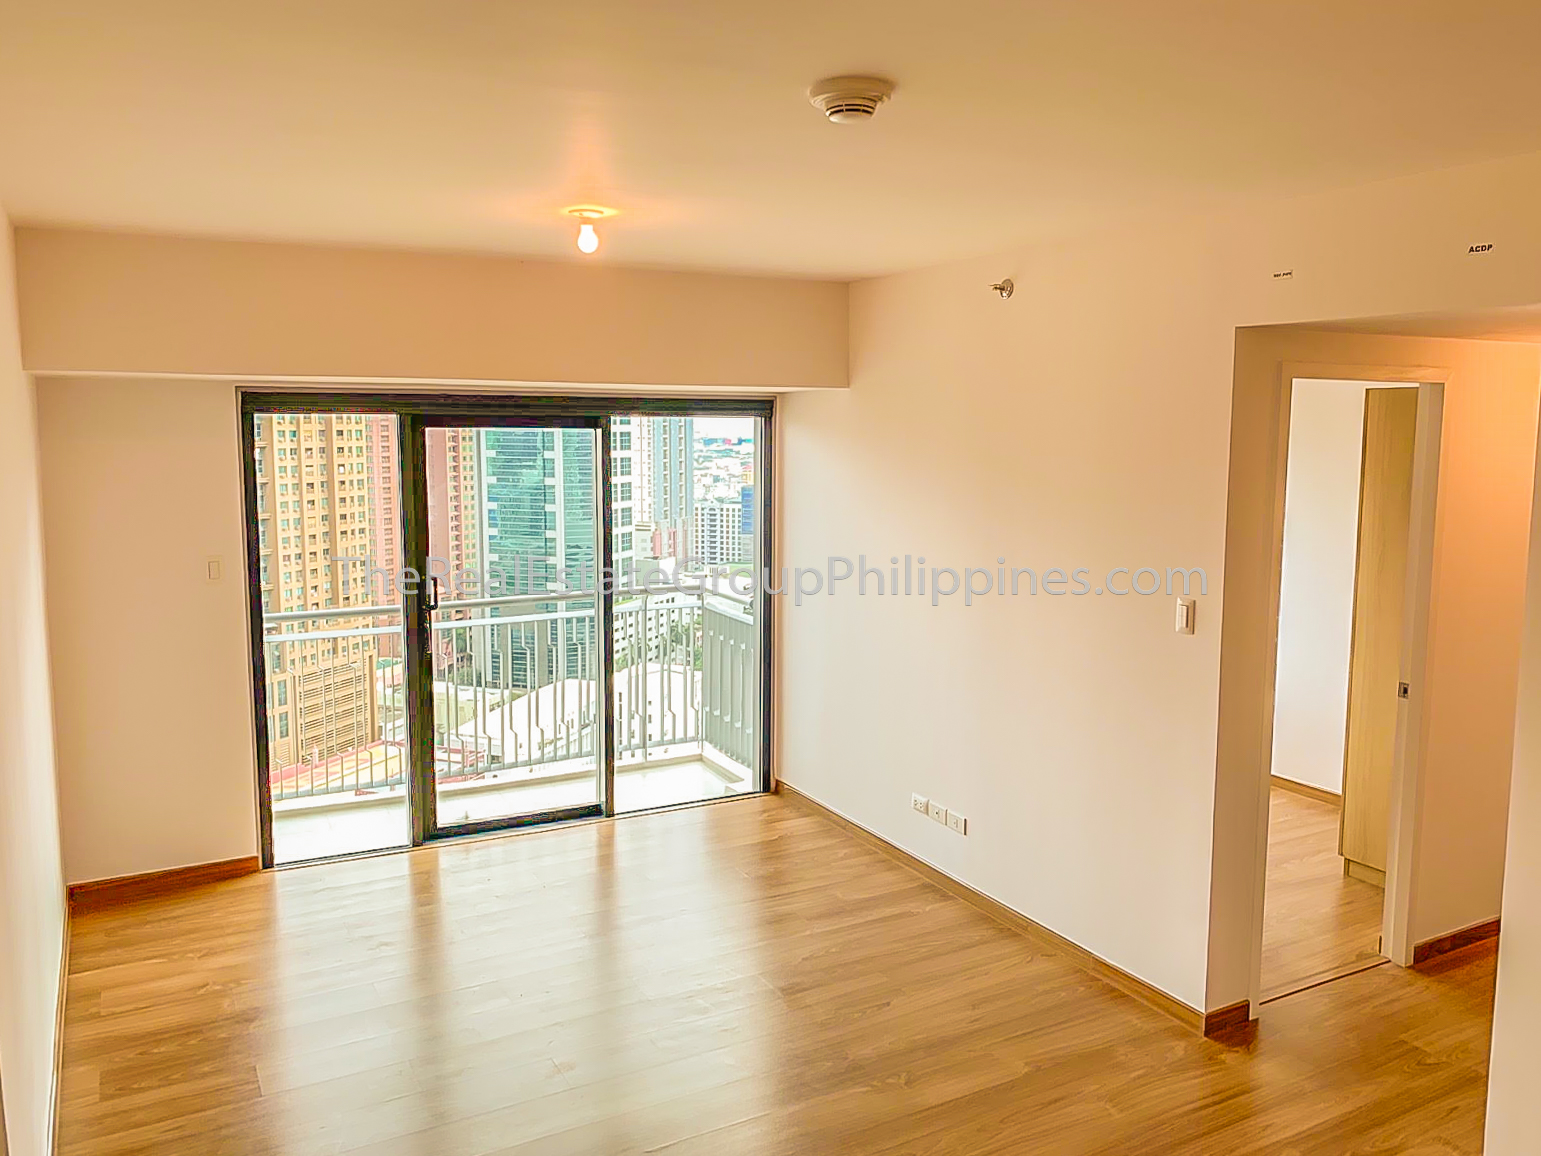 2BR Condo For Rent Lease The Rise Makati 70k (9 of 9)